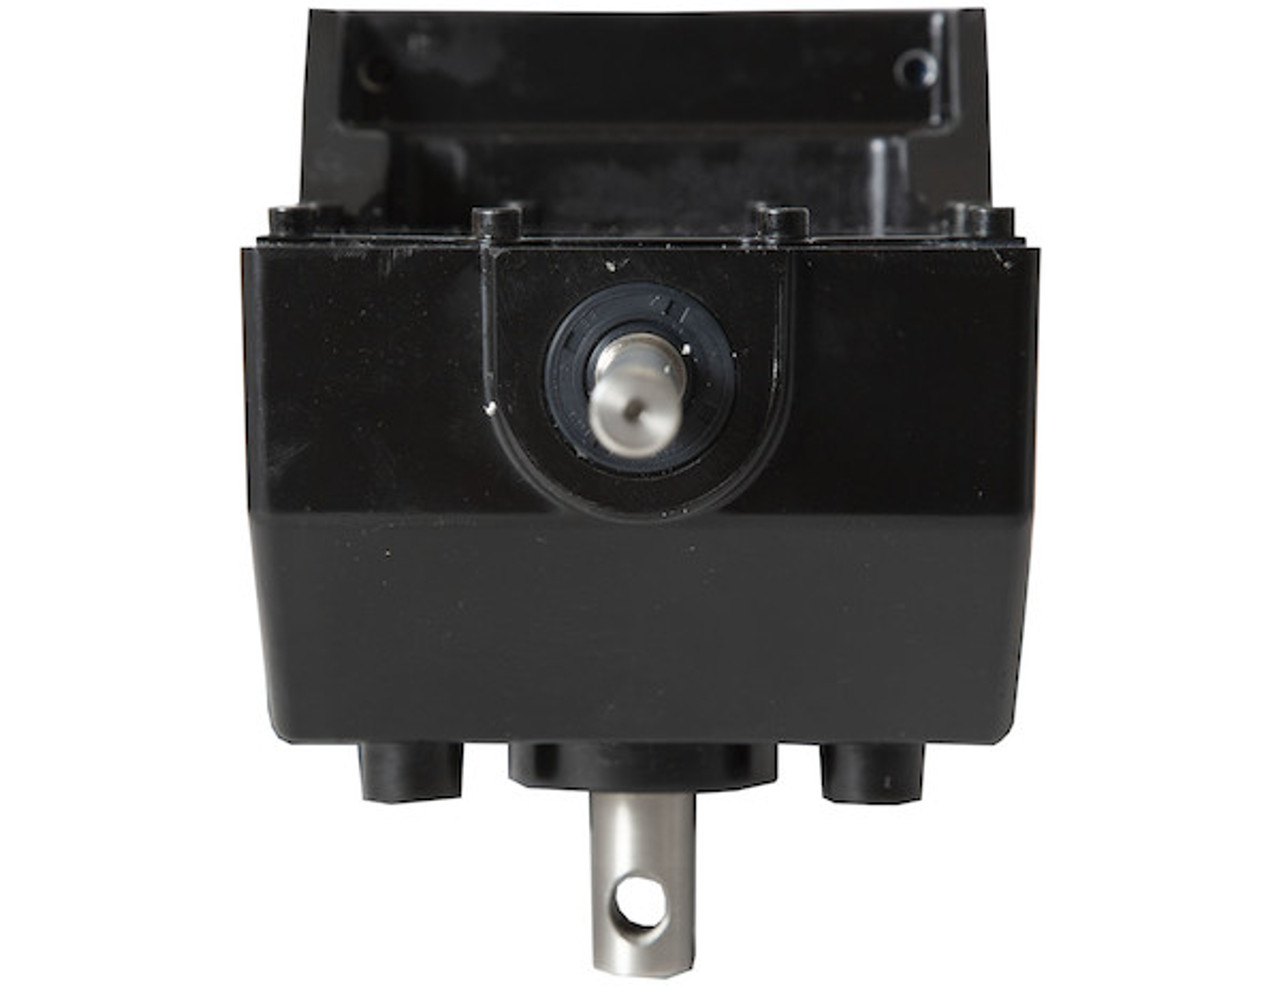 3015377 BUYERS SALTDOGG REPLACEMENT .5 HP 12 VDC DUAL SHAFT GEAR MOTOR FOR TGS03 AND TGS07 3